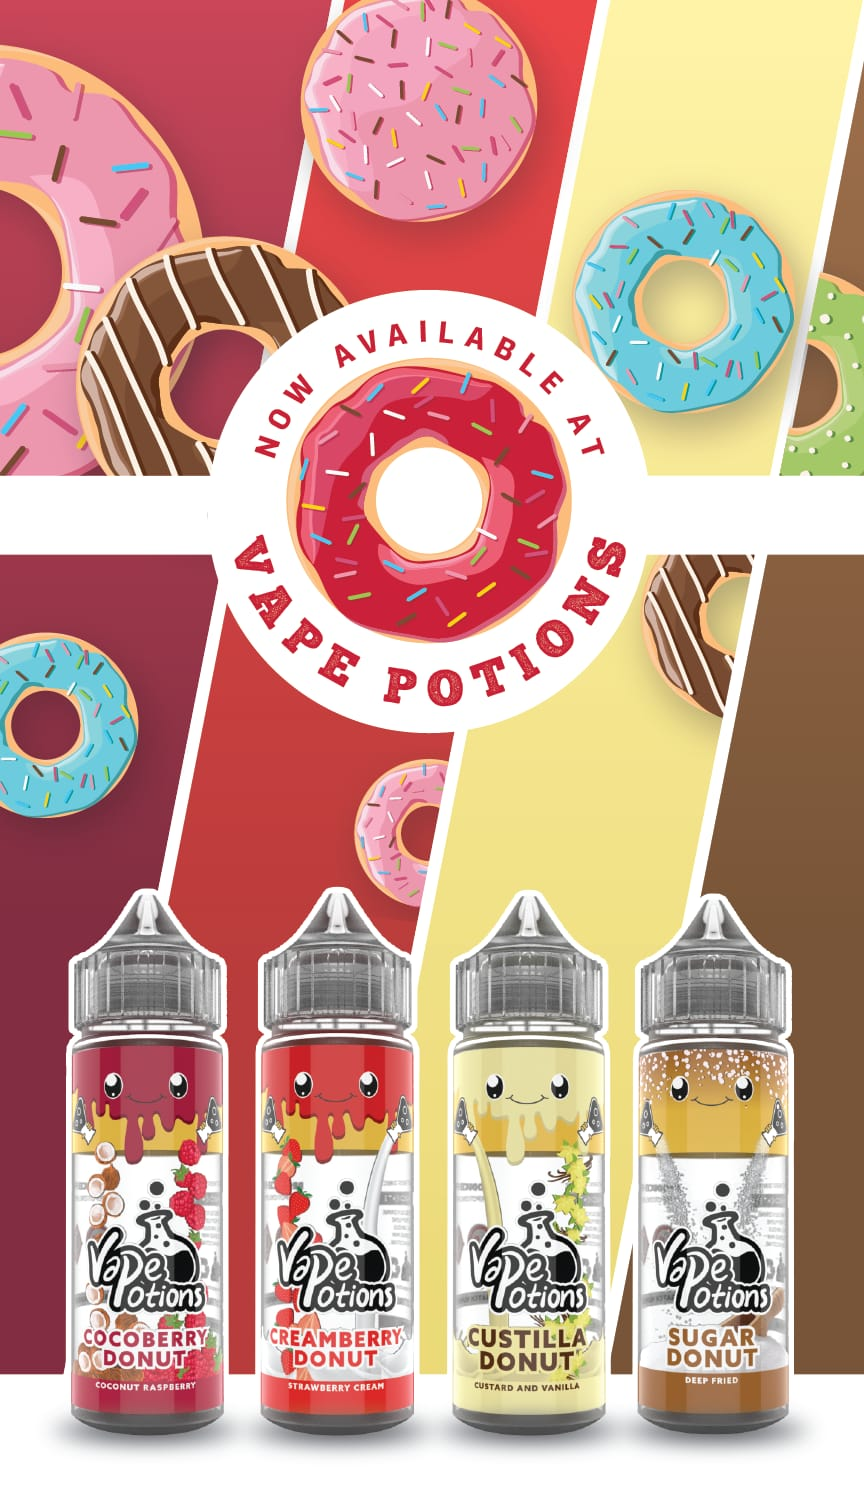 Vape Potions Donut Range 120ml shortfill – £6.75